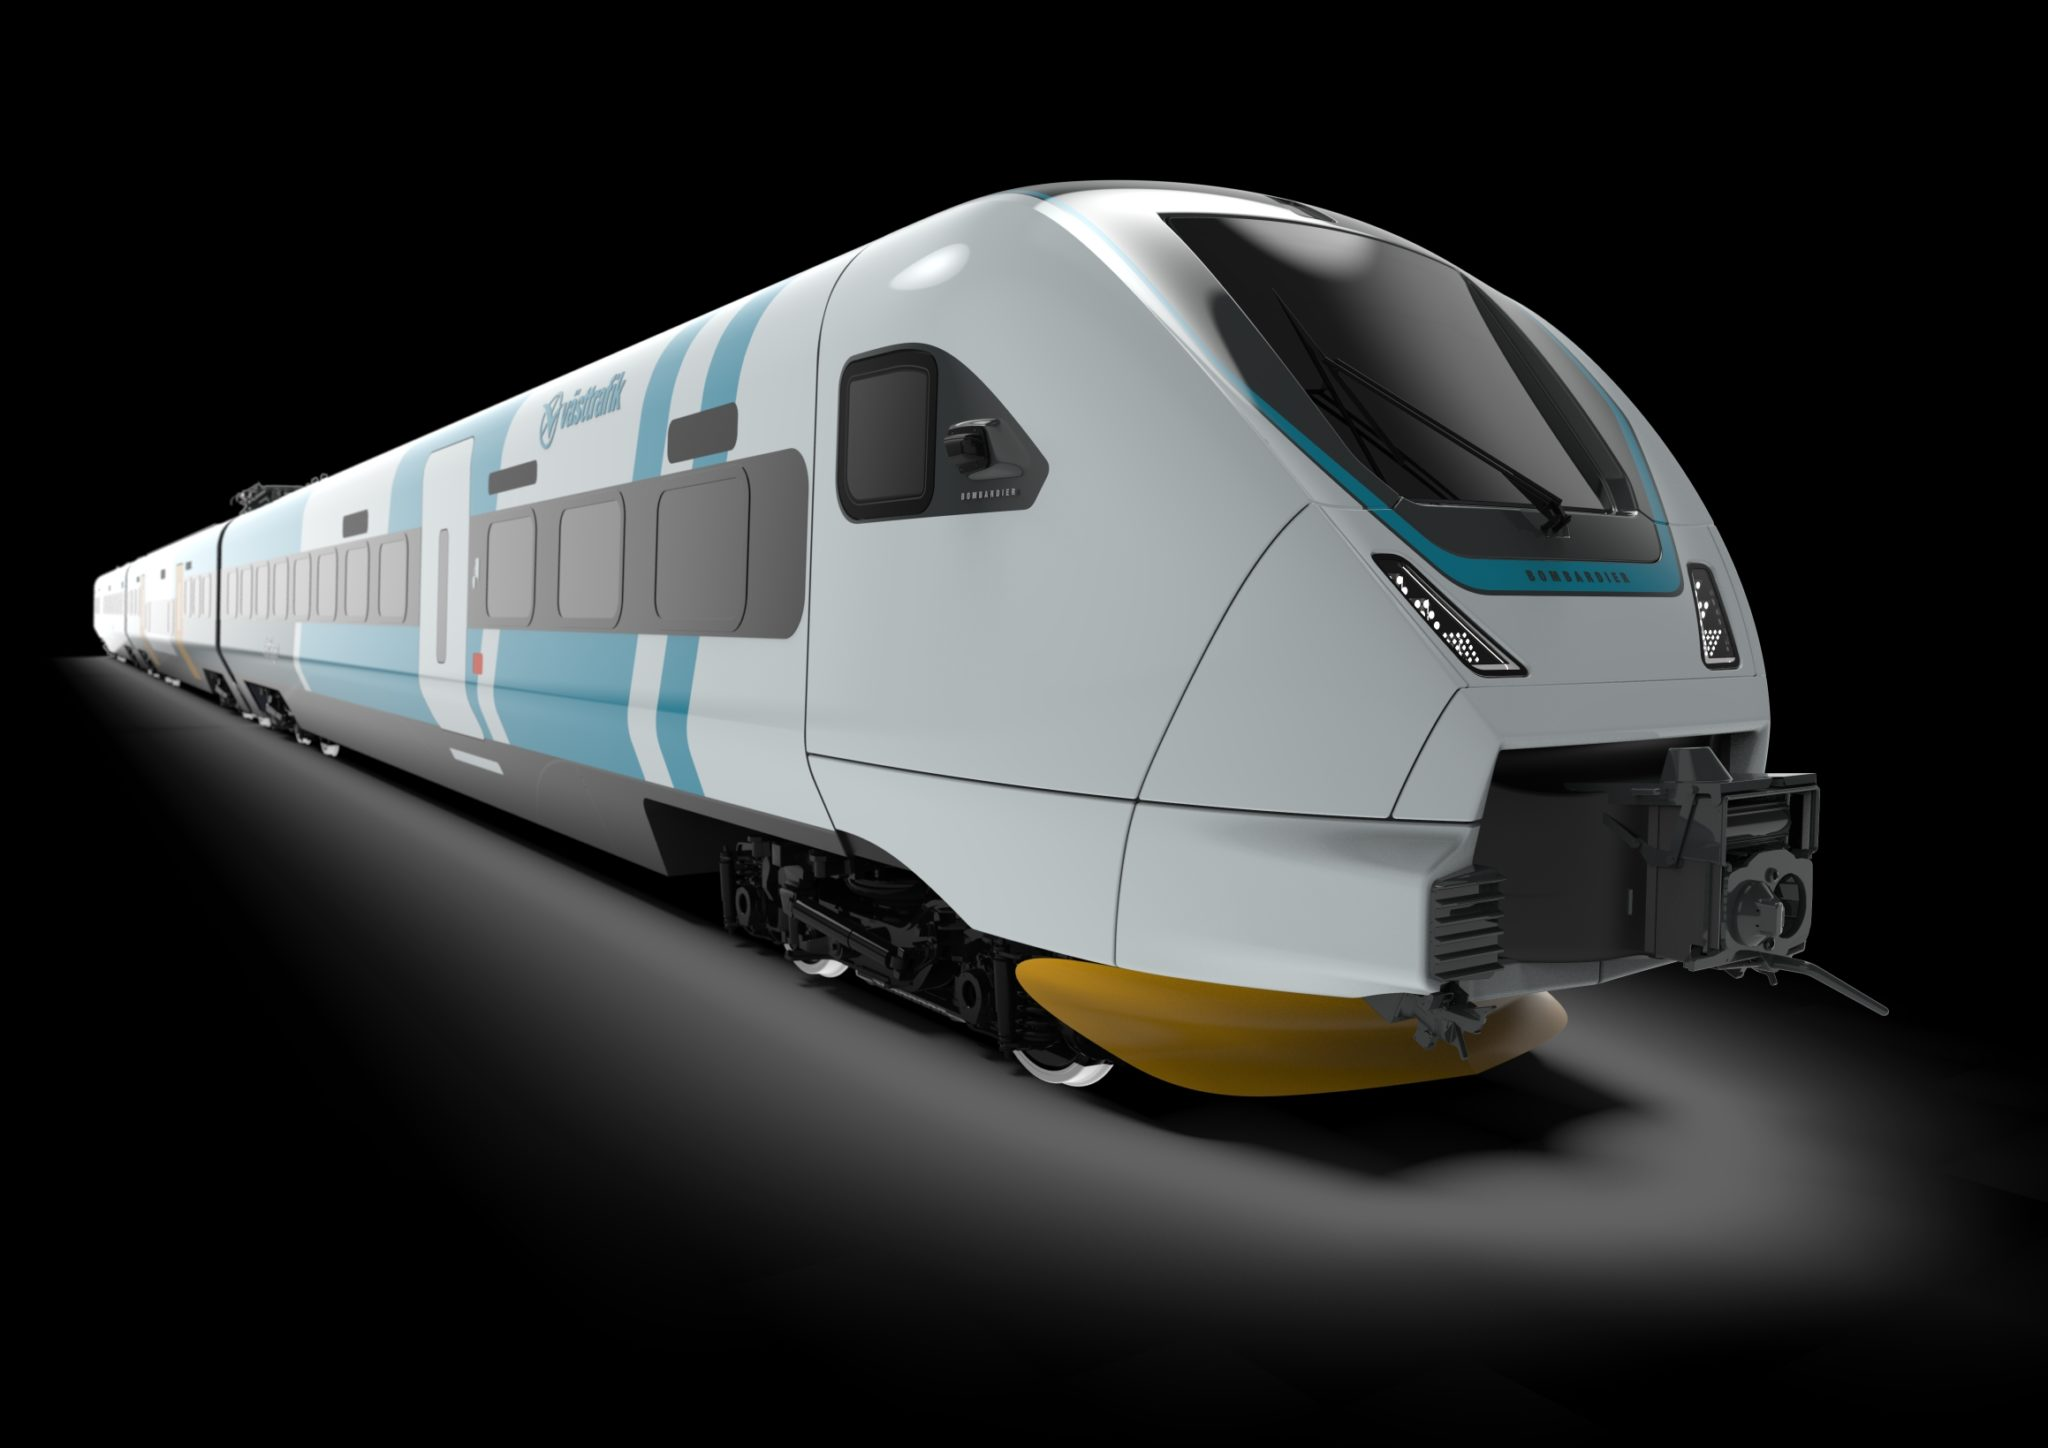 Bombardier ZEFIRO Express intercity train wins German design award